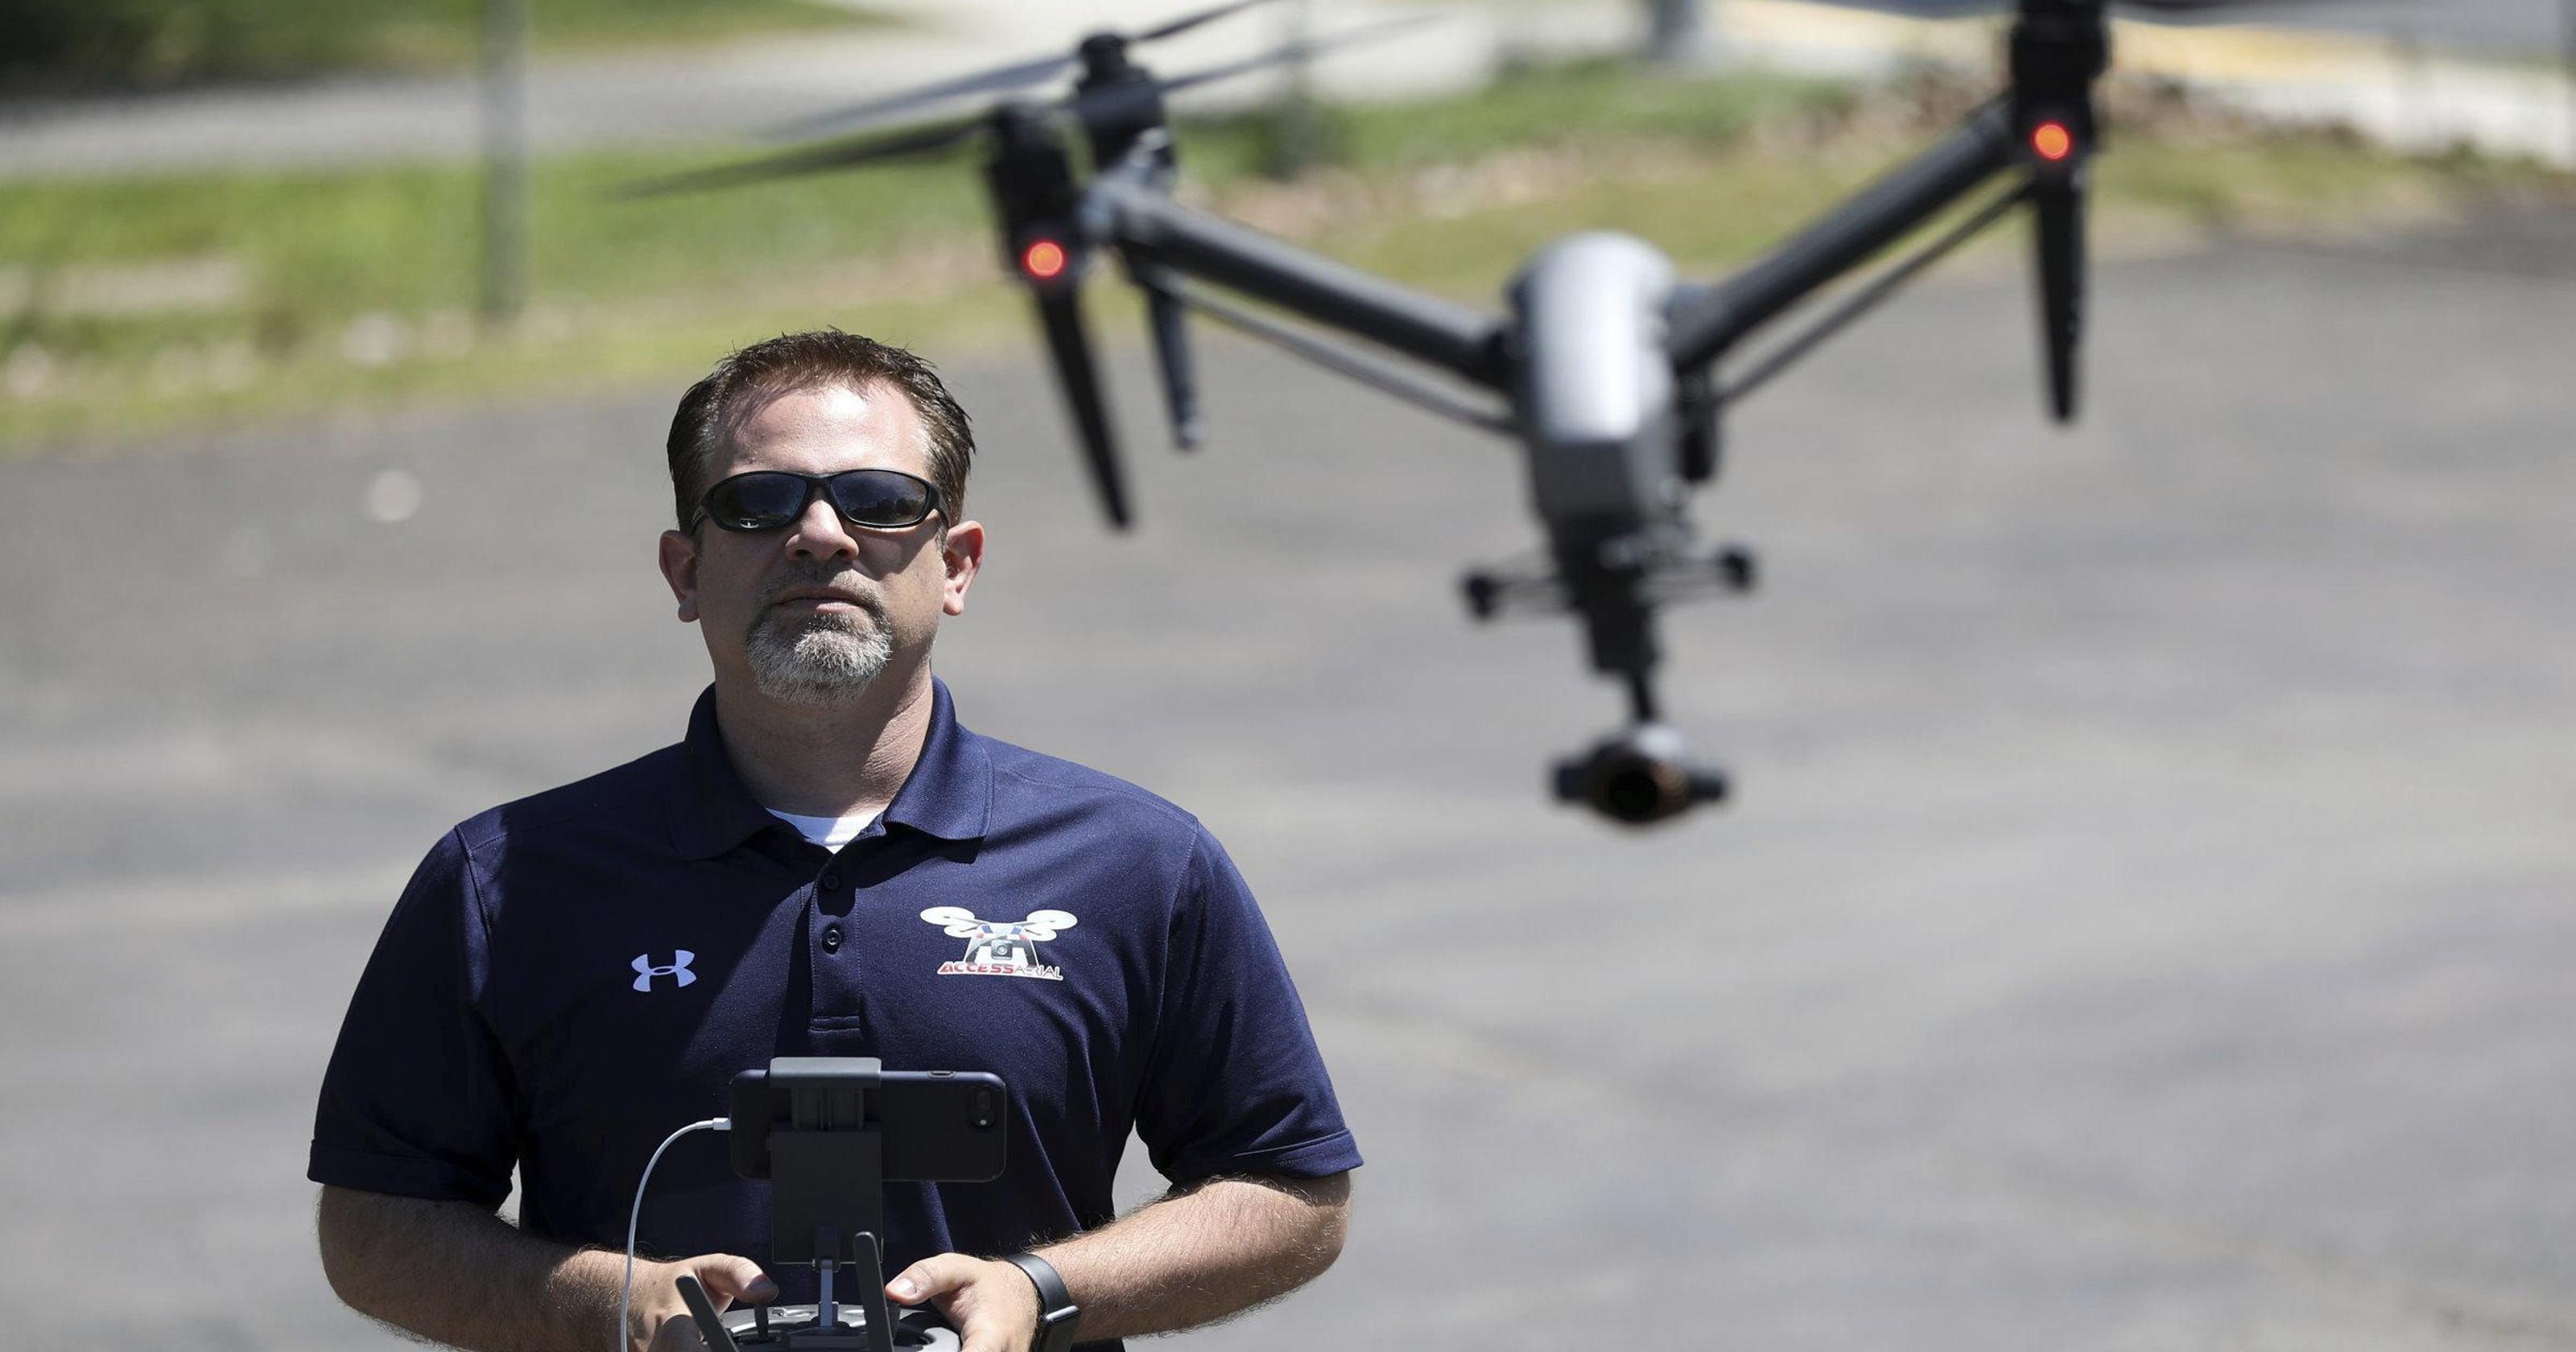 Pa  man turns drone hobby into business venture